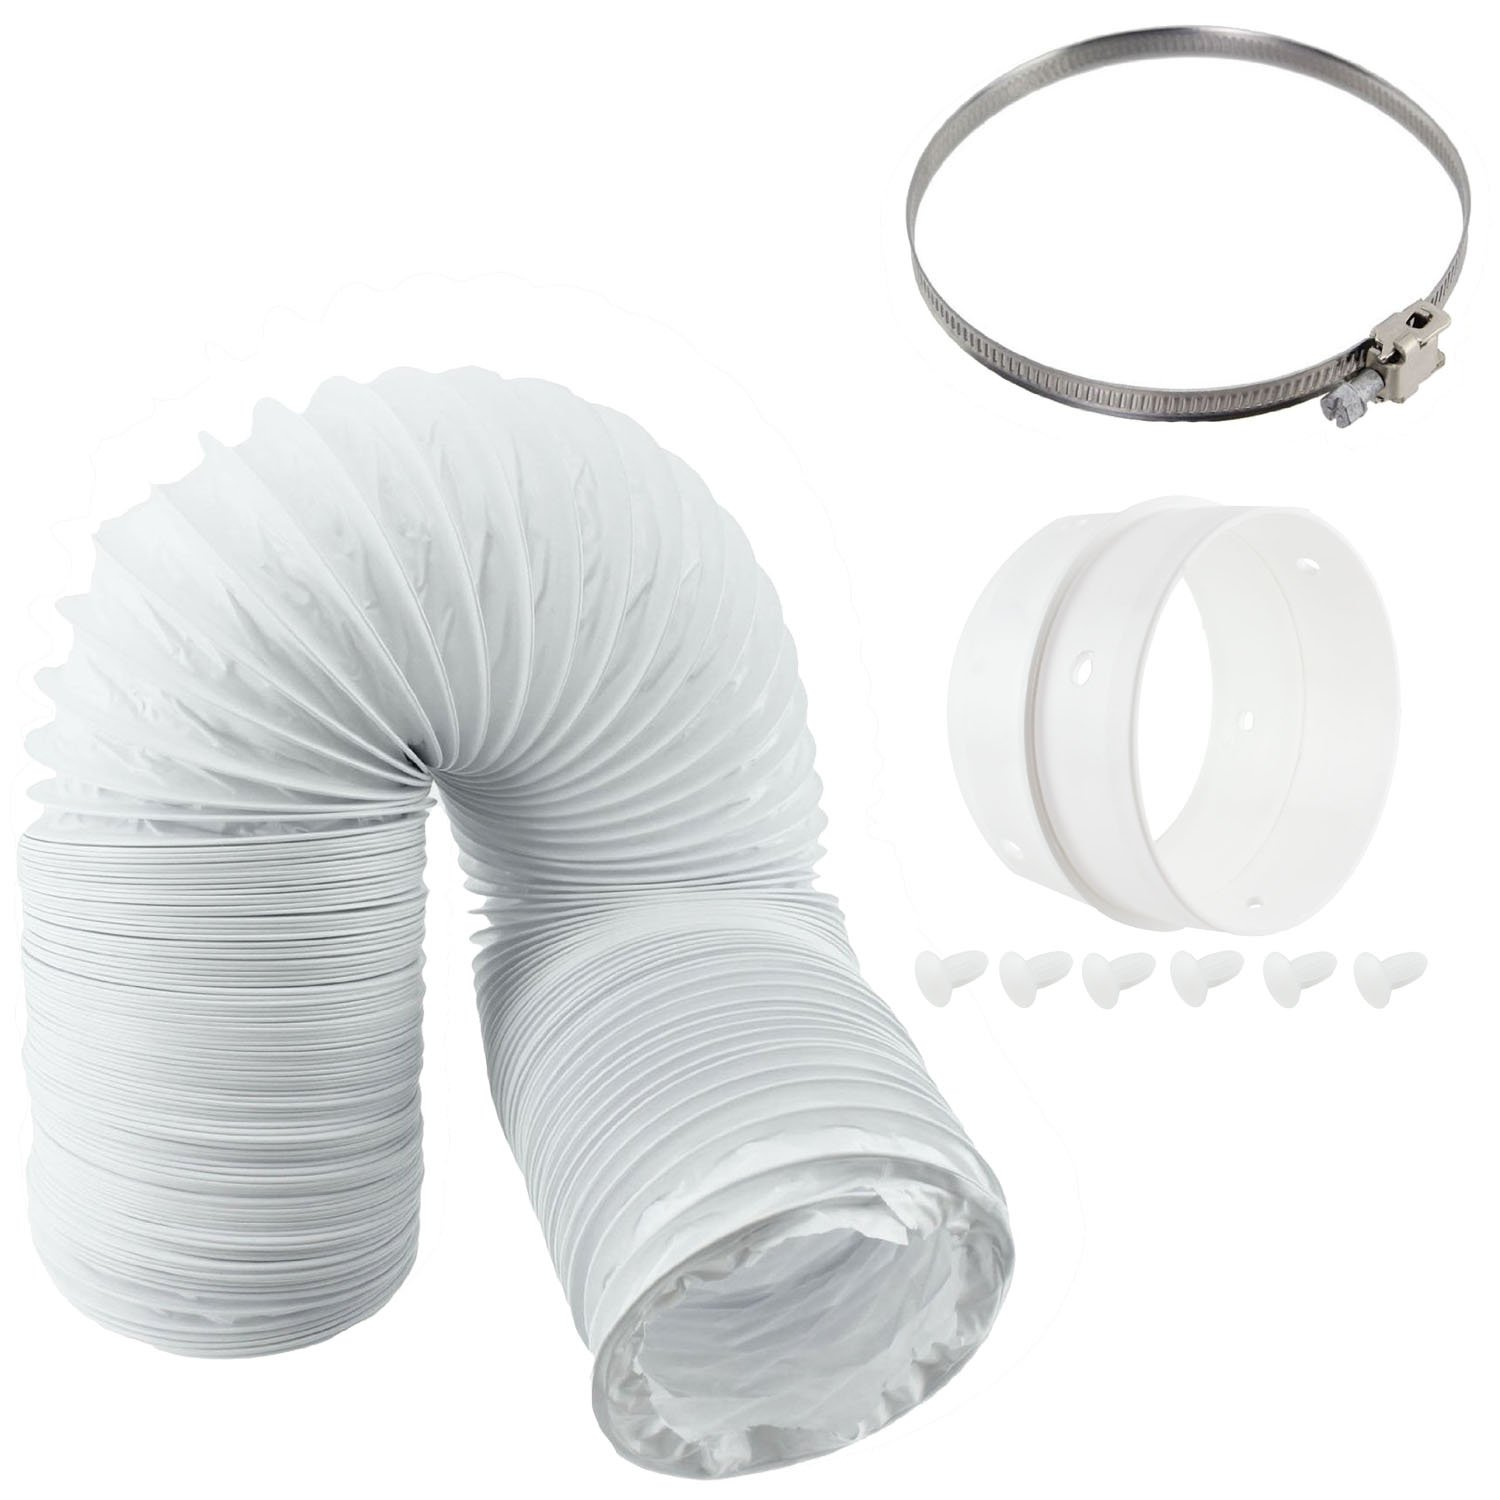 SPARES2GO Vent Hose & Extension Ring Kit for HOTPOINT Vented Tumble Dryer (4